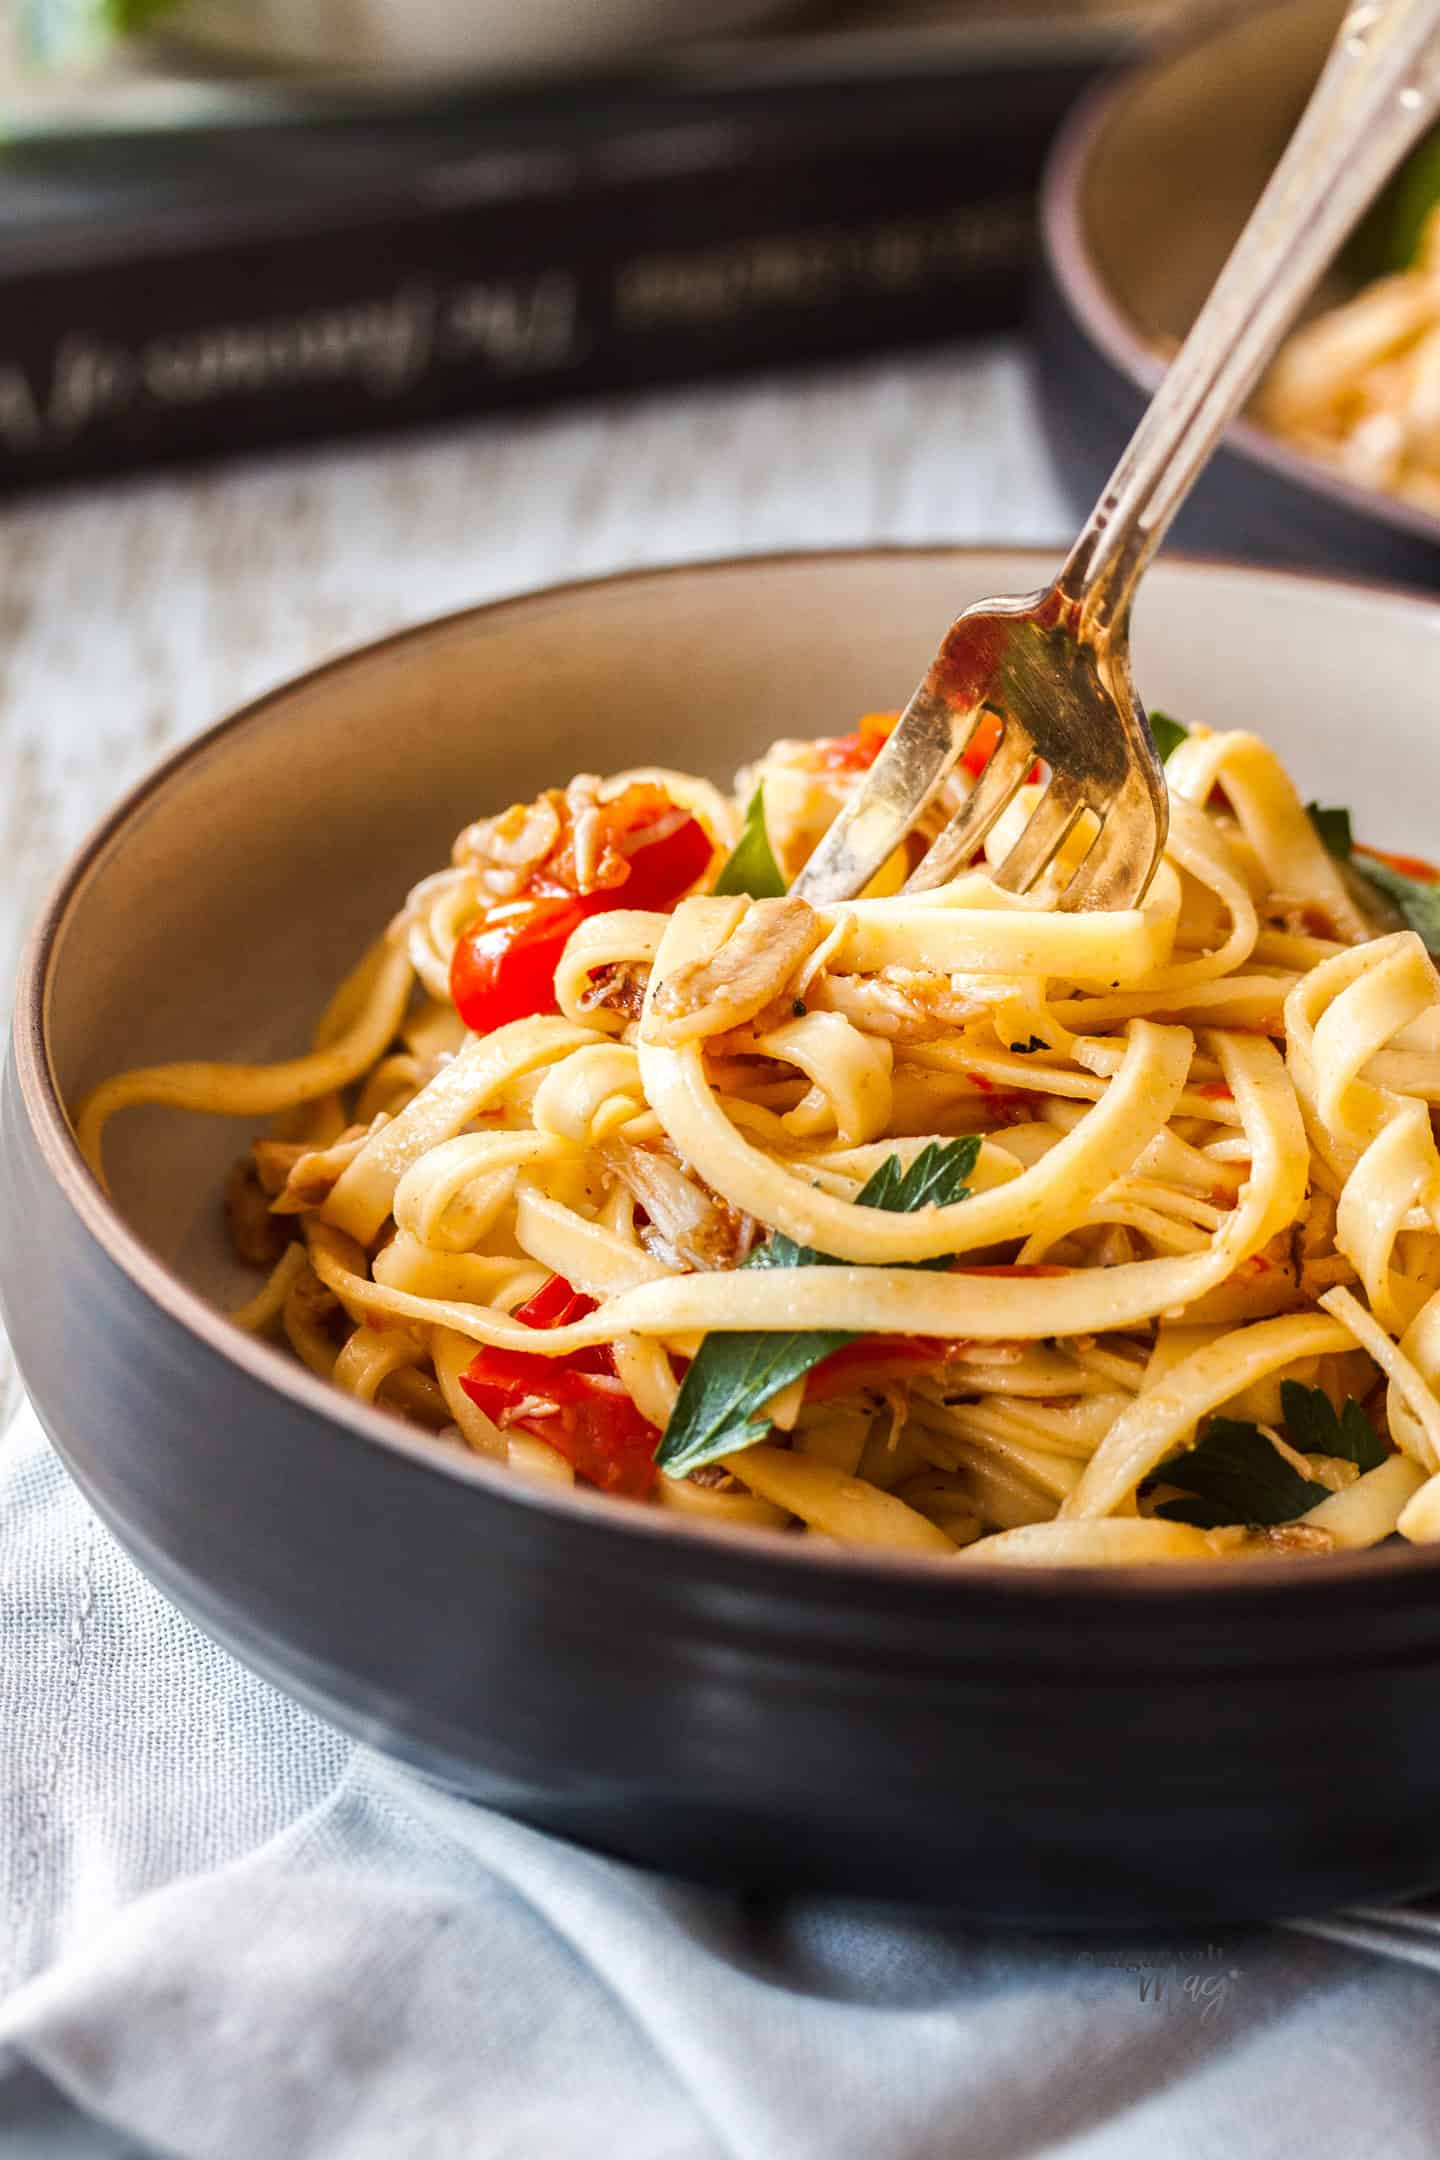 A fork digging into a bowl of linquine with crab and tomatoes in it.